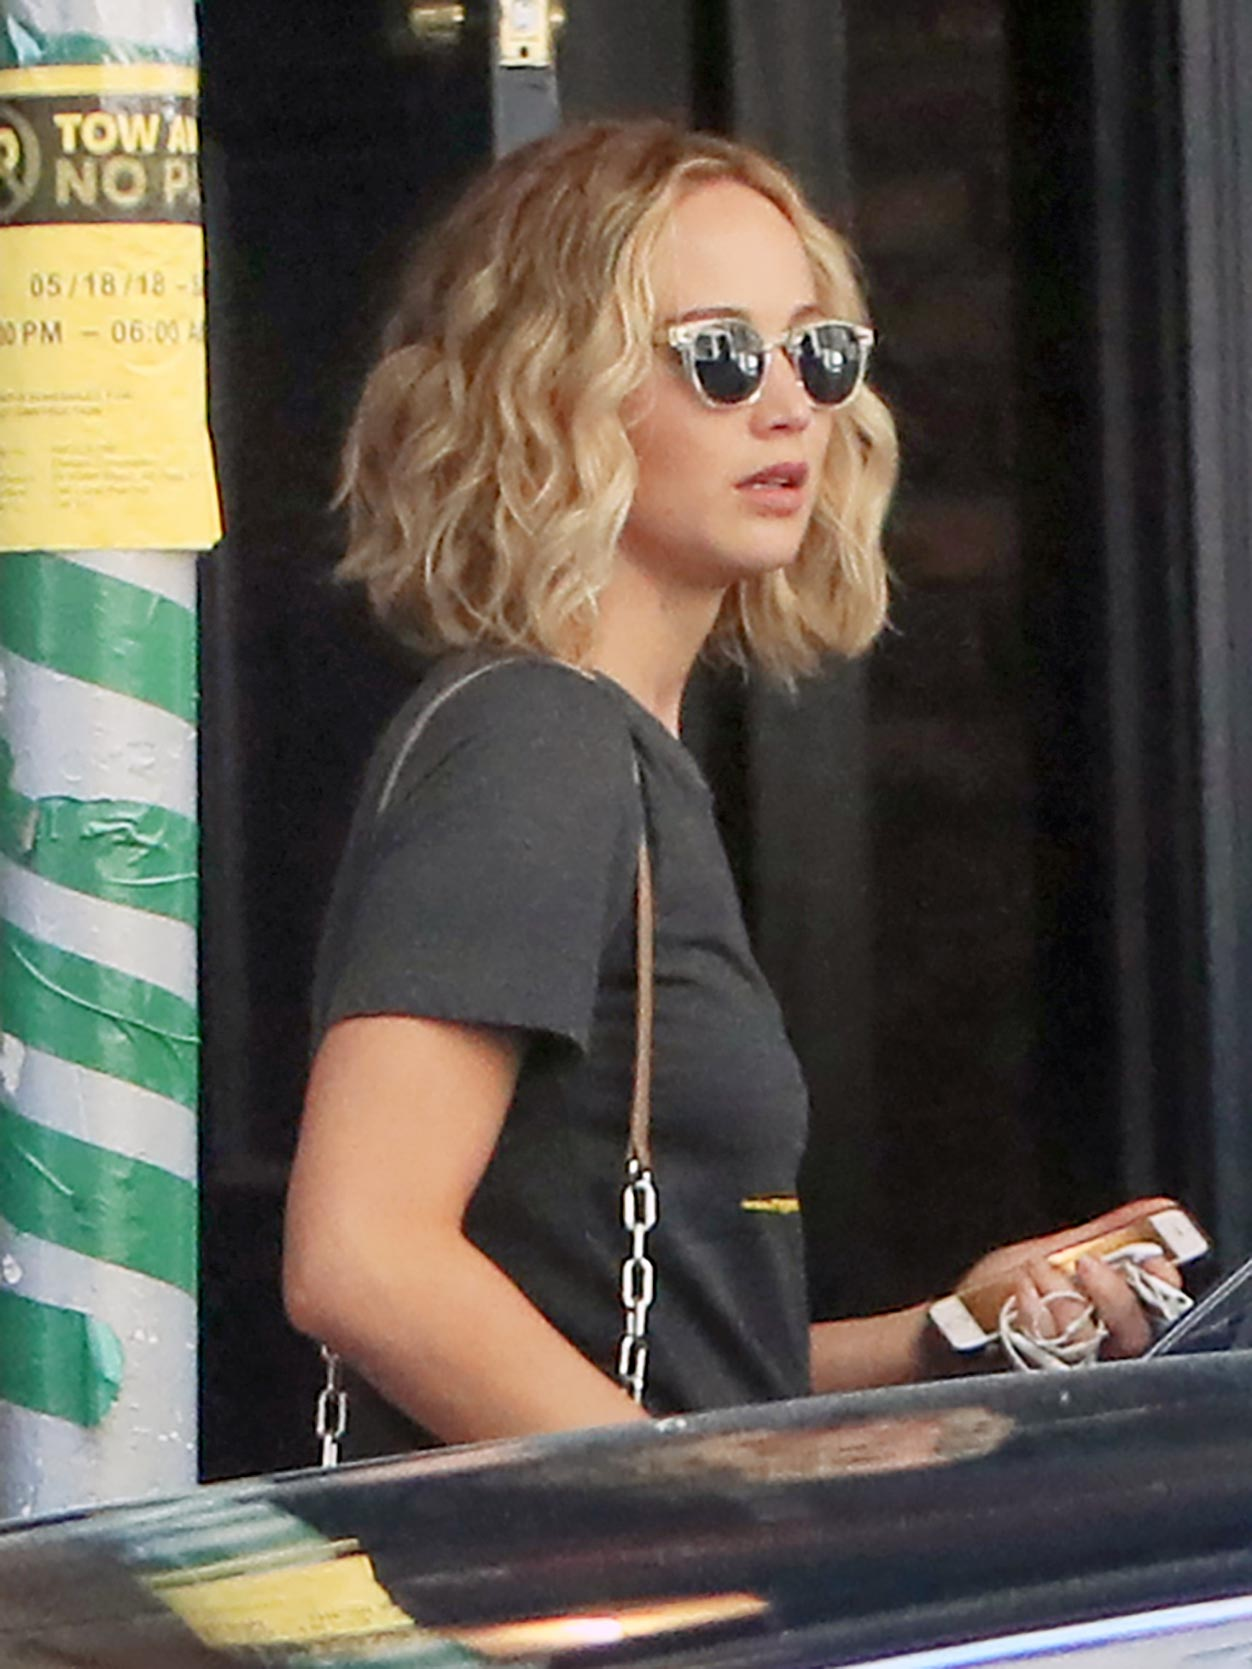 EXCLUSIVE: Jennifer Lawrence is Spotted Exiting an Apartment Building in New York City.